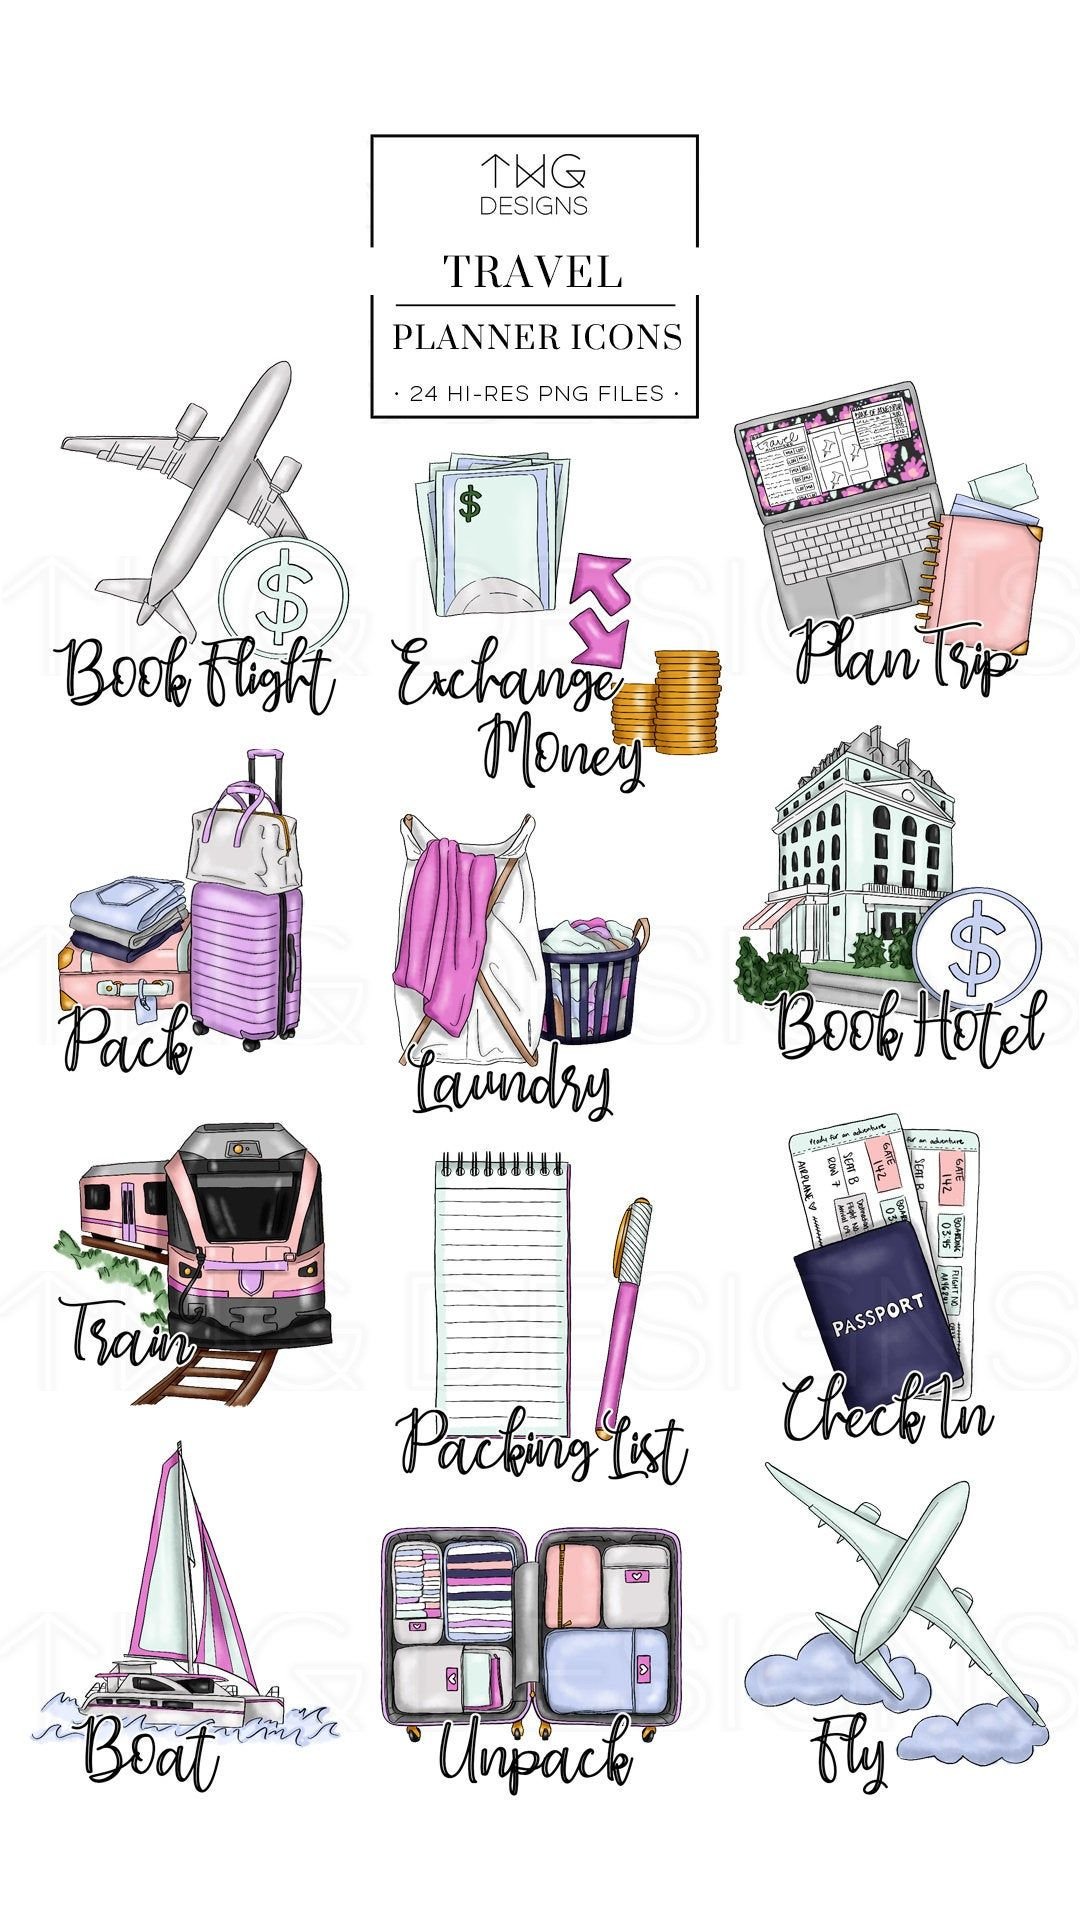 Planner clipart specification. Travel icons clip art